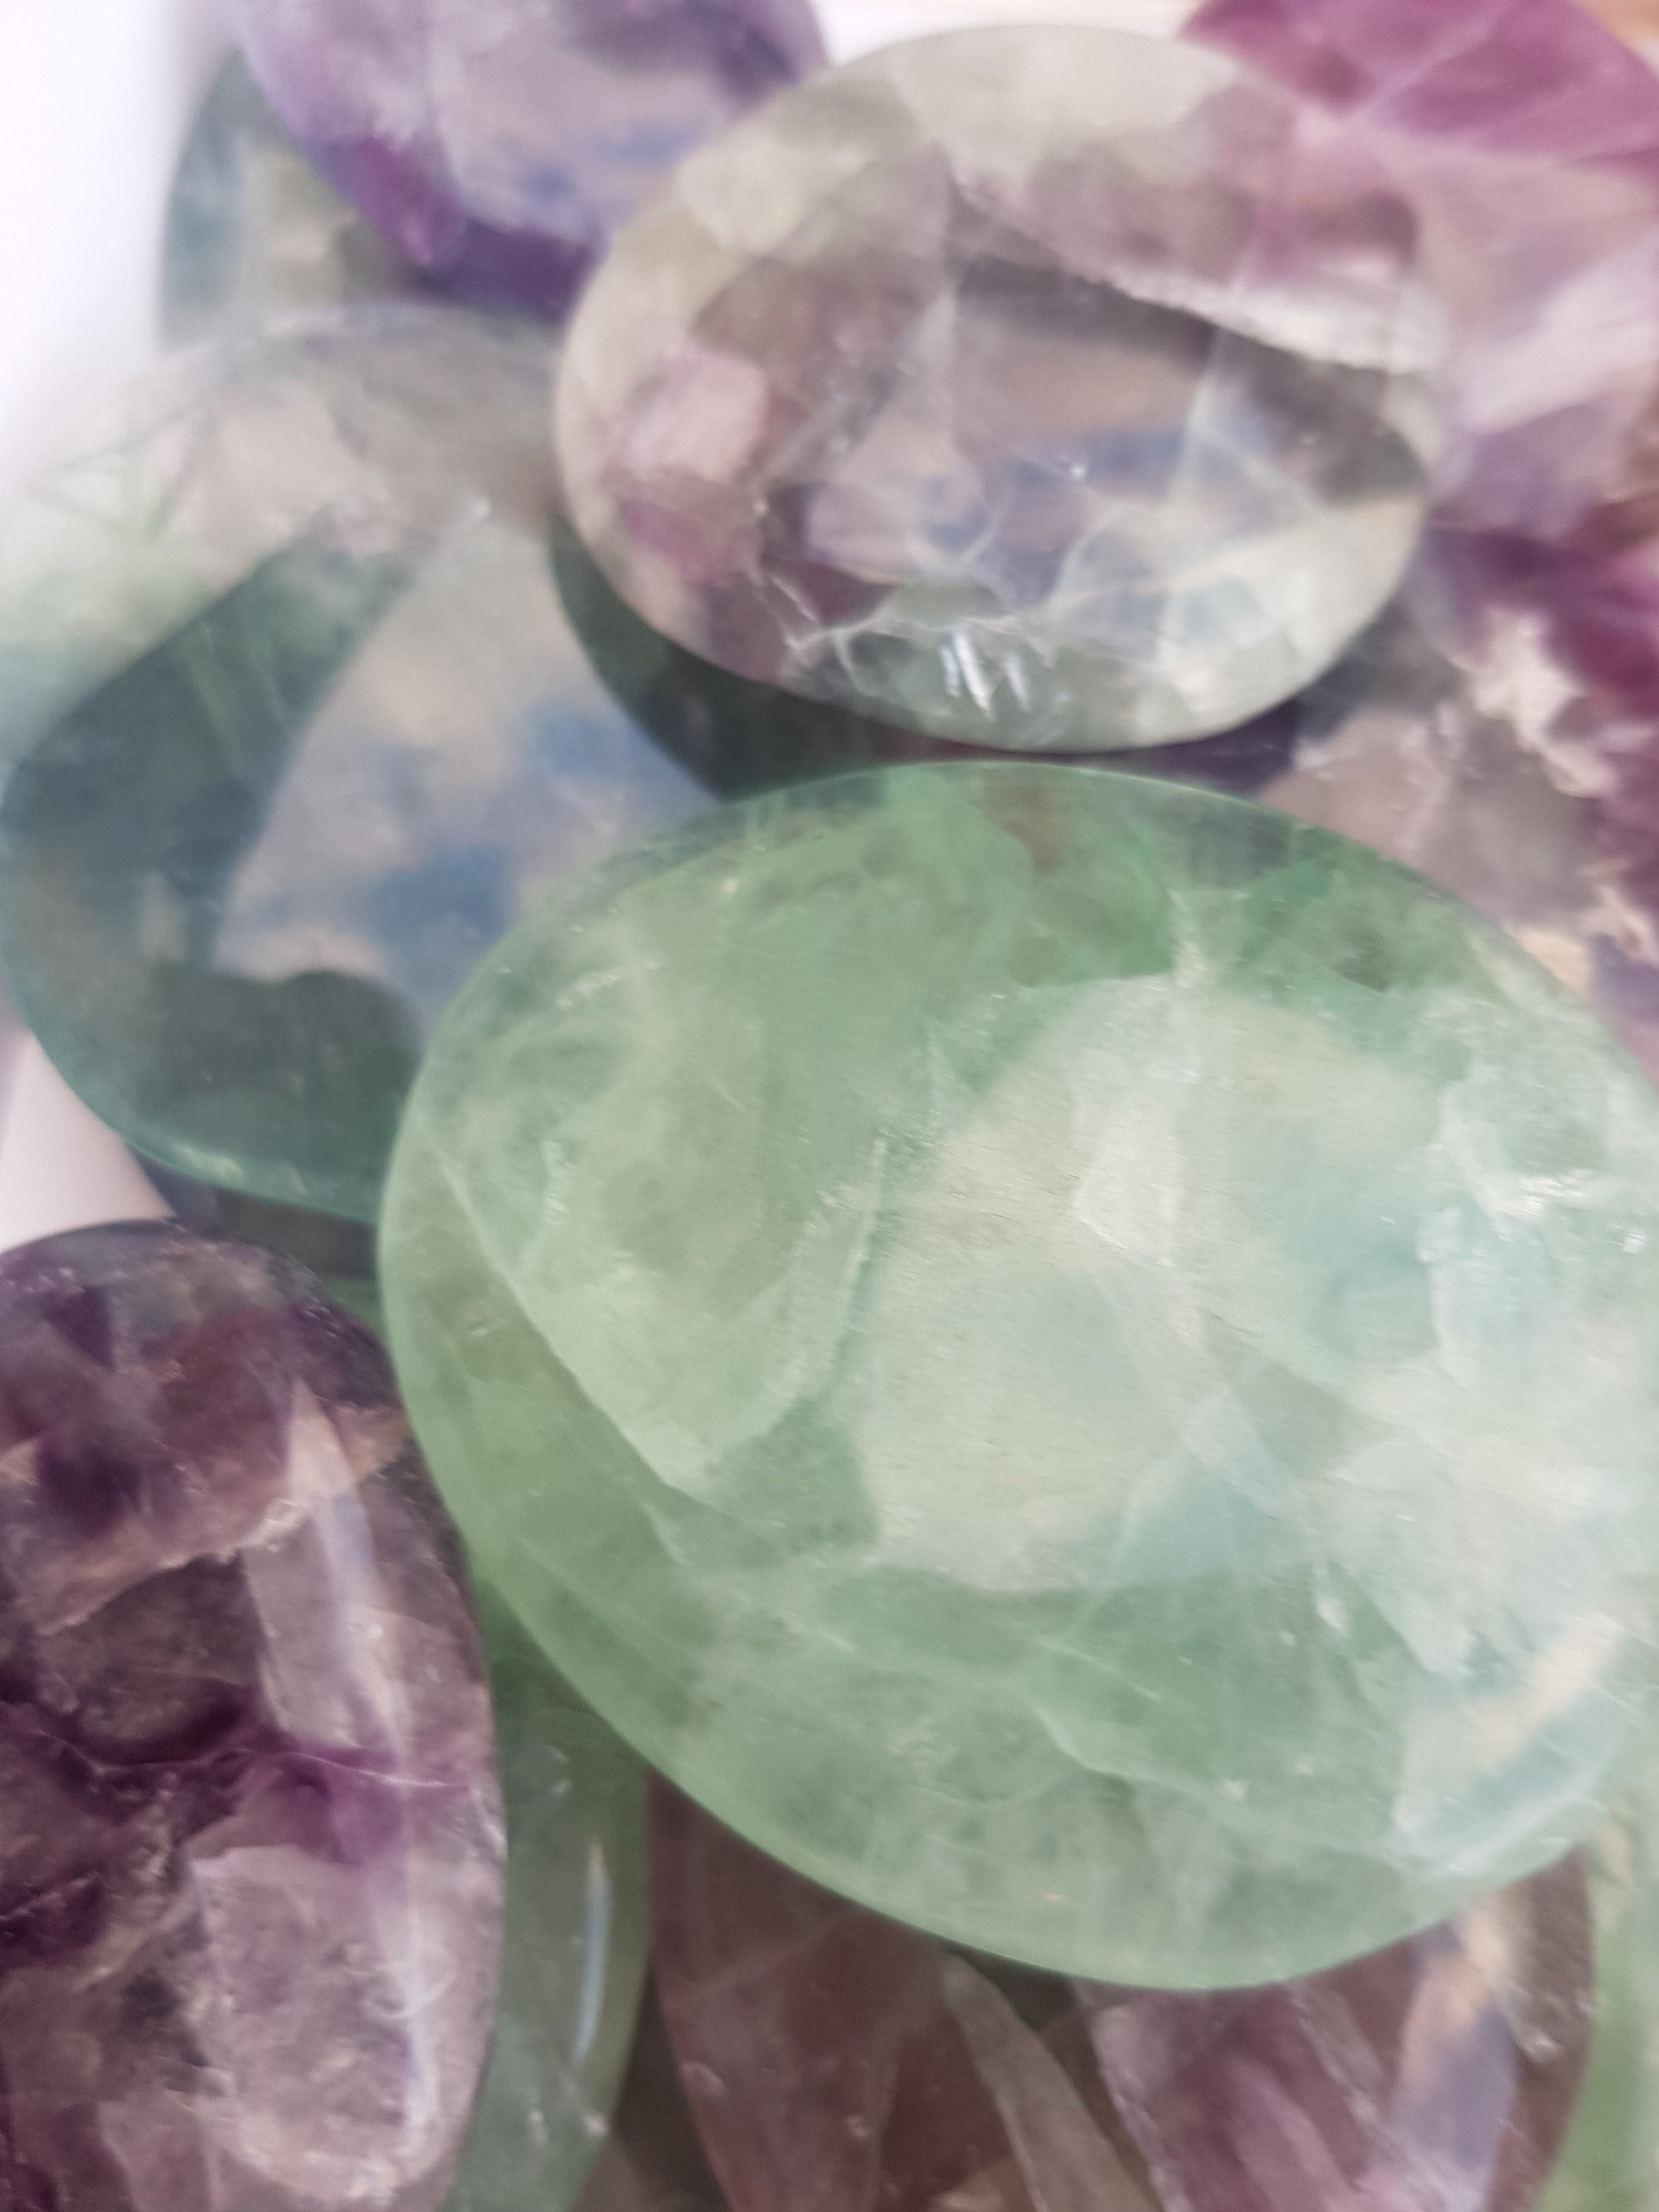 Rainbow fluorite palmstones. translucent flat and smooth. colour varies from green to purple in a single piece